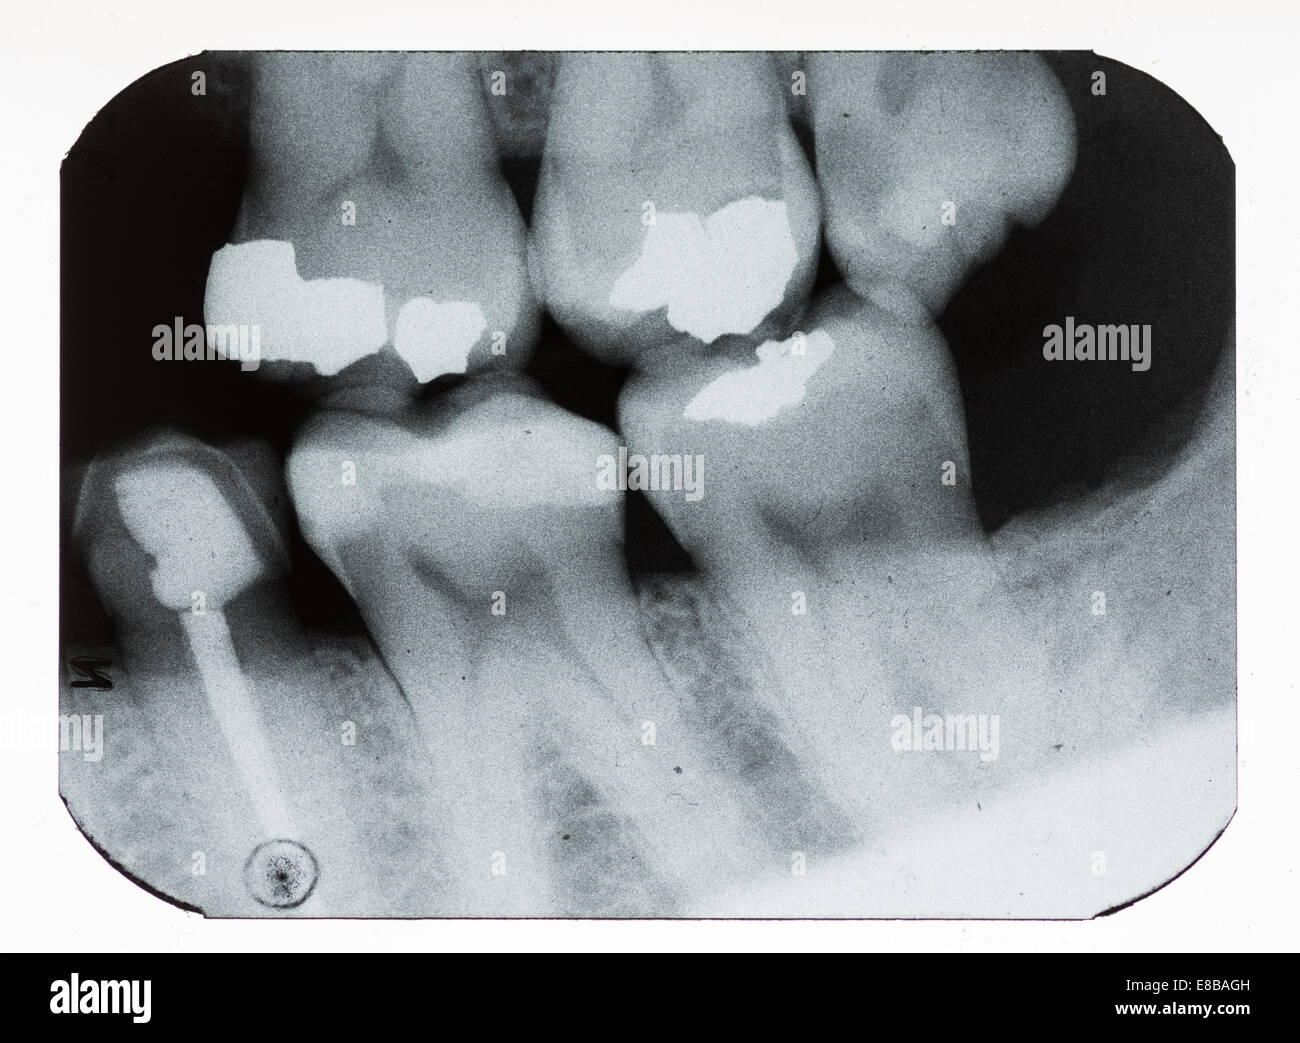 dental xray showing fillings and missing teeth - Stock Image